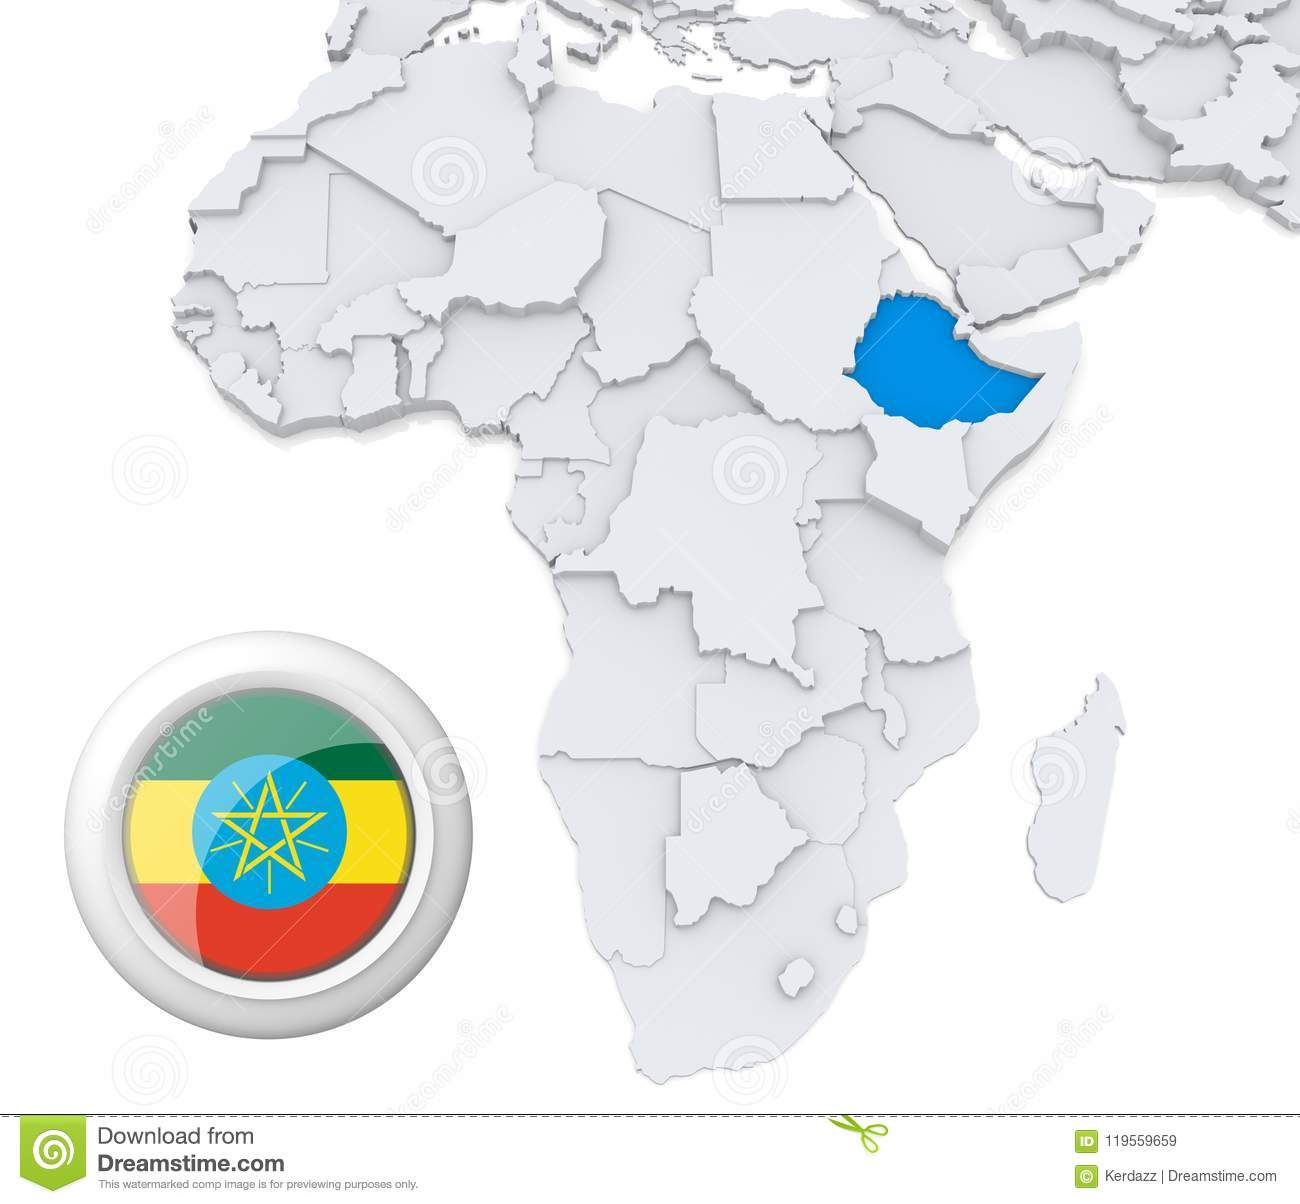 Ethiopia on Africa map stock illustration. Illustration of business ...